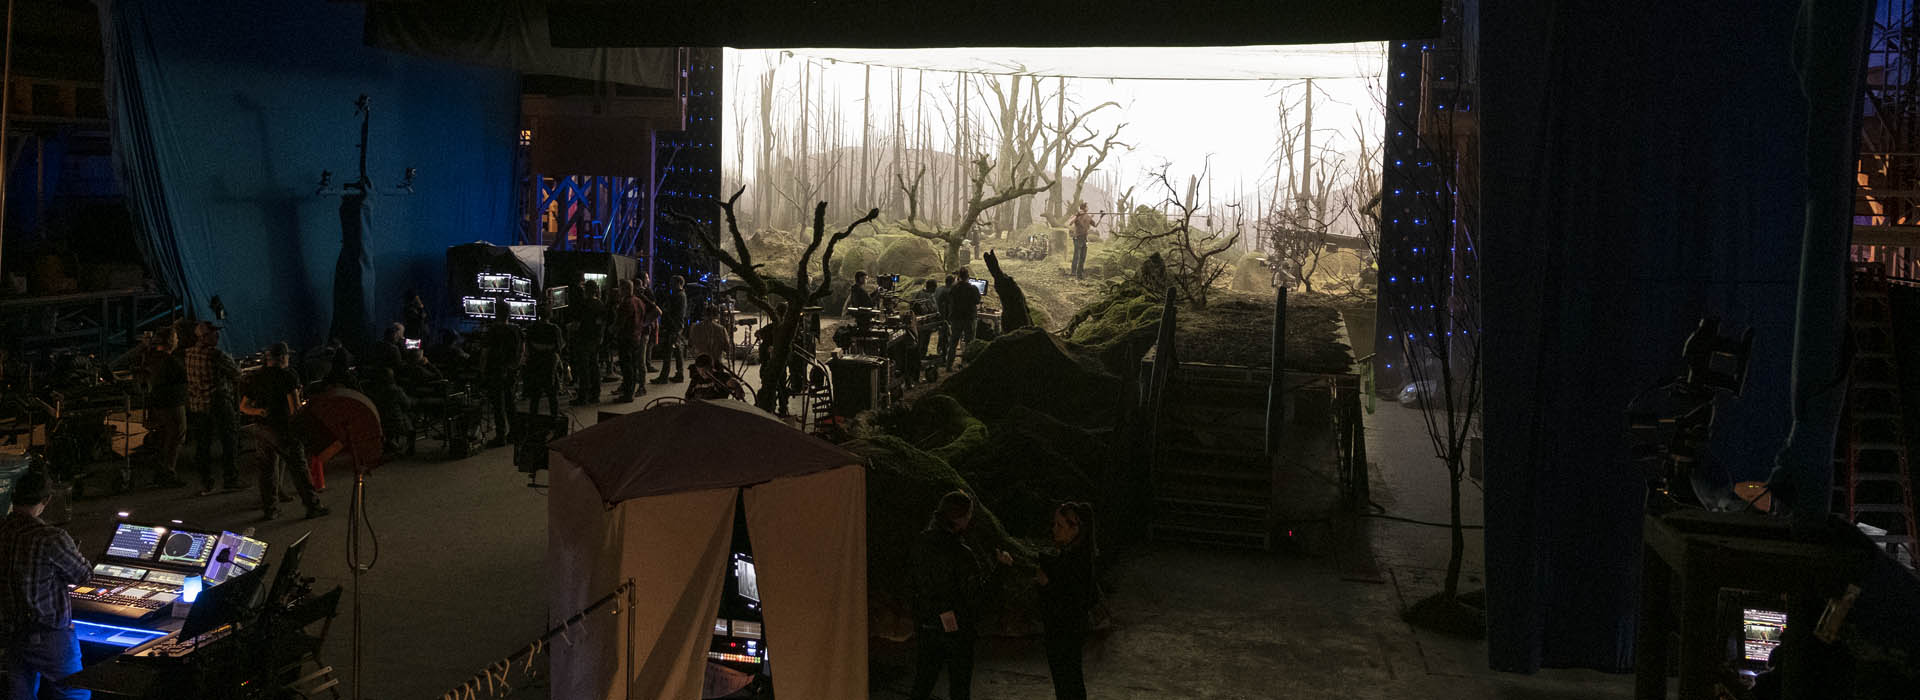 A behind the scenes image from season 2 of The Mandalorian